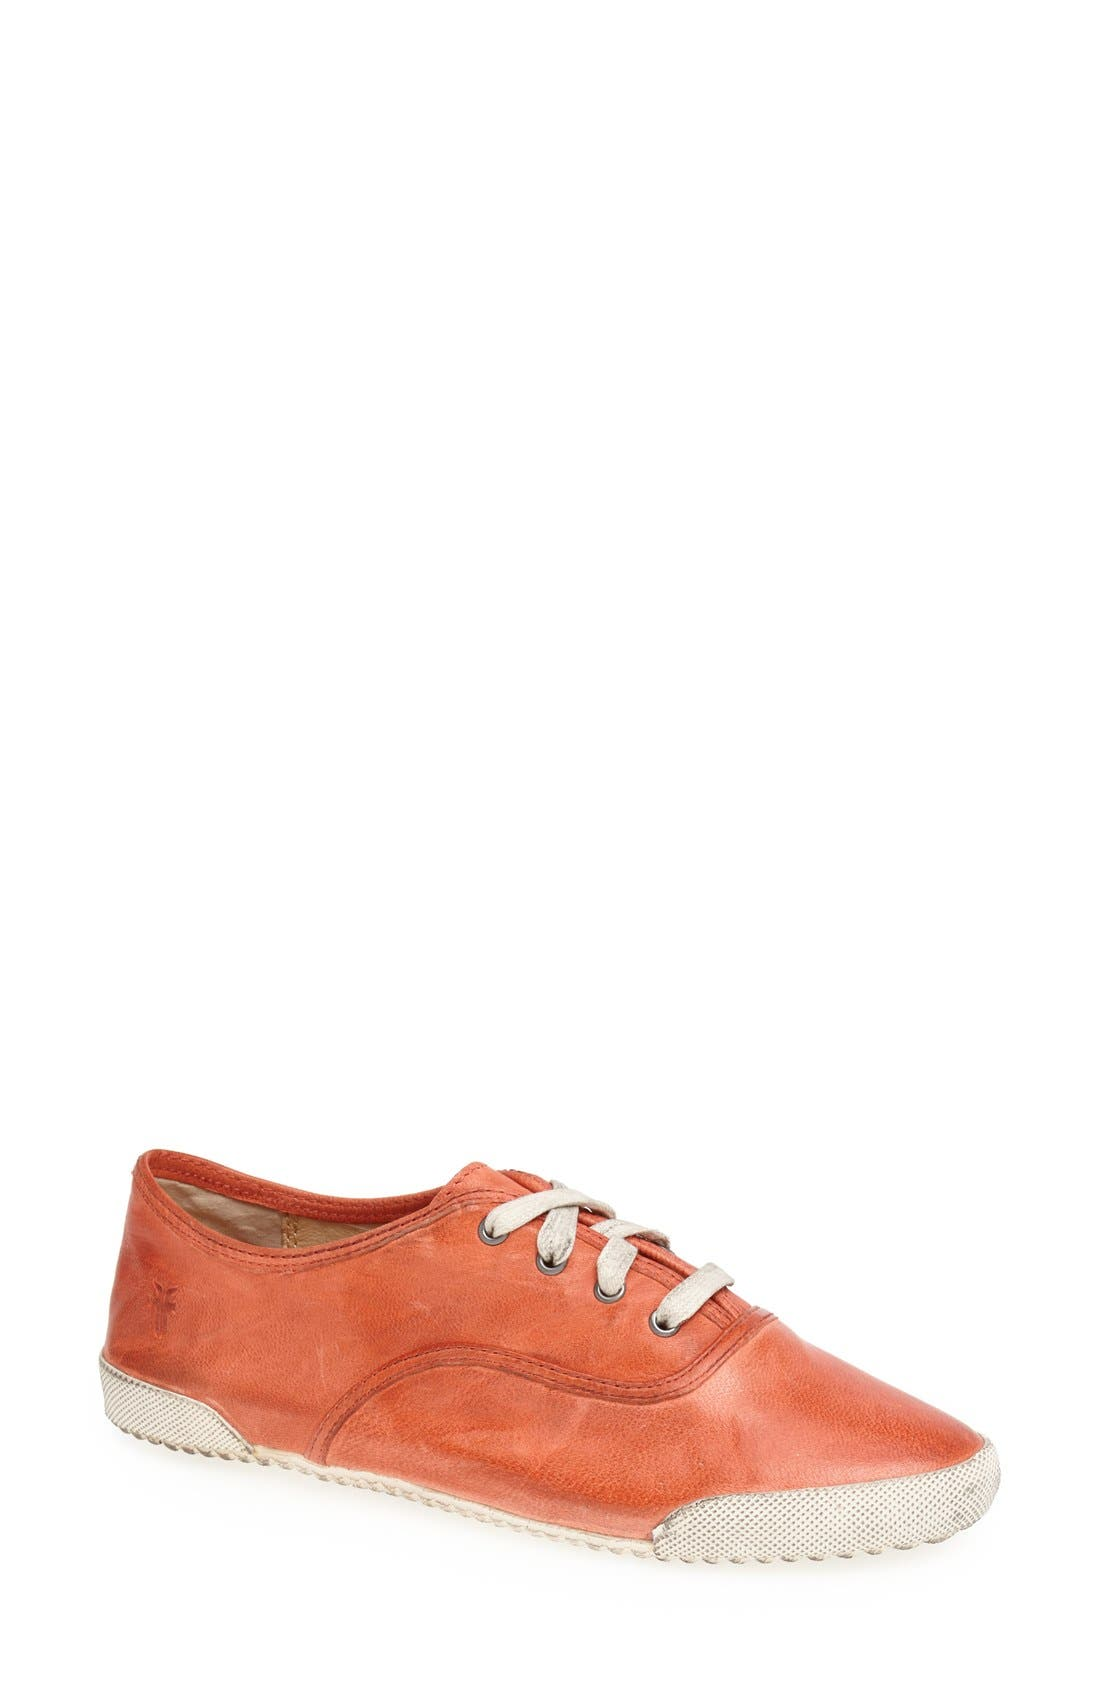 Main Image - Frye 'Melanie' Leather Sneaker (Women)